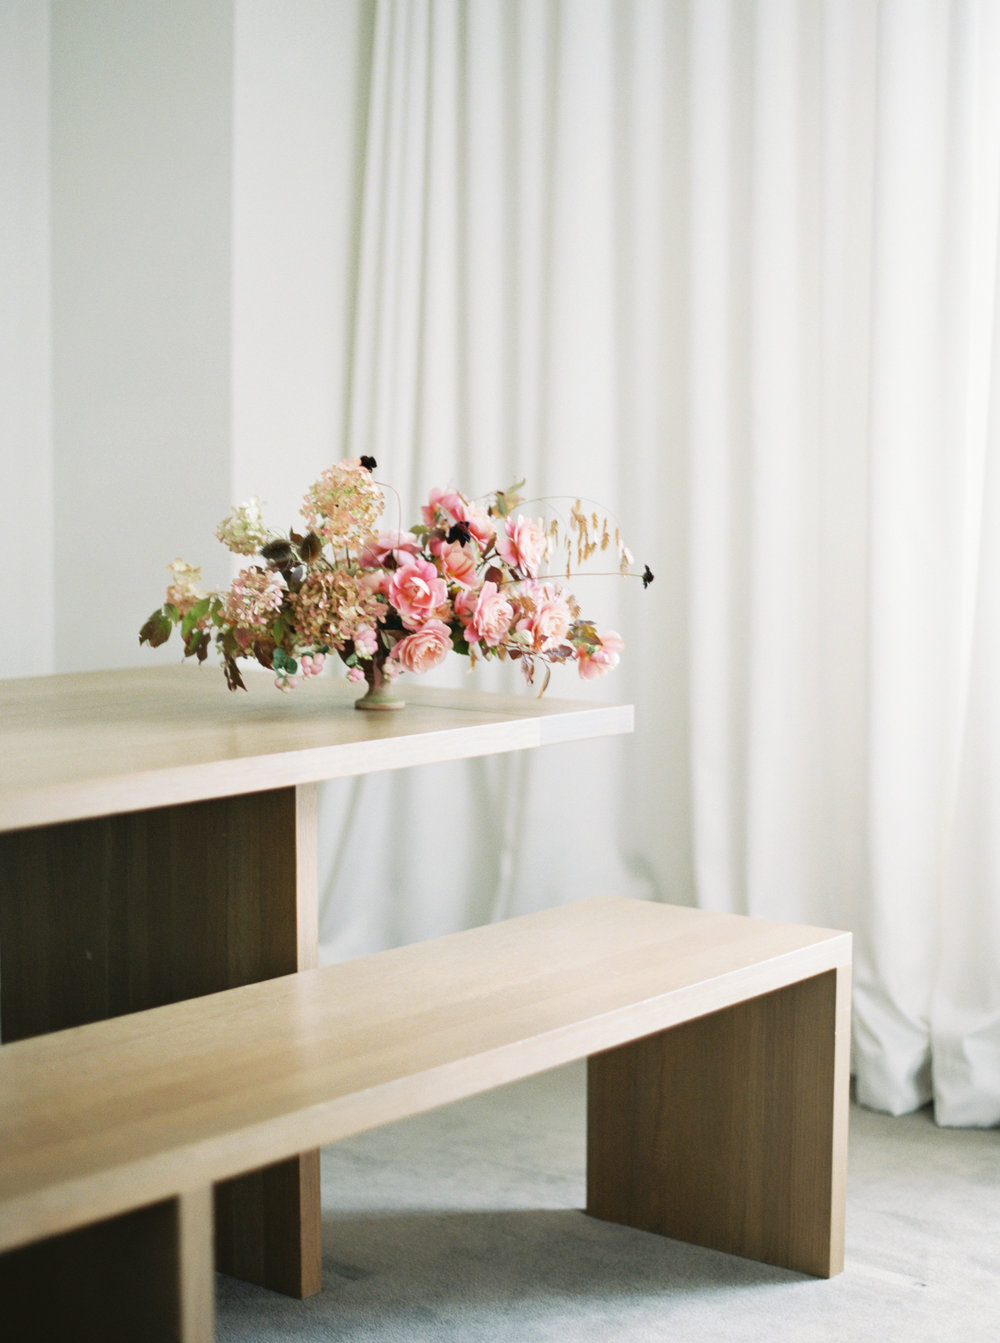 chicagoweddingflorist